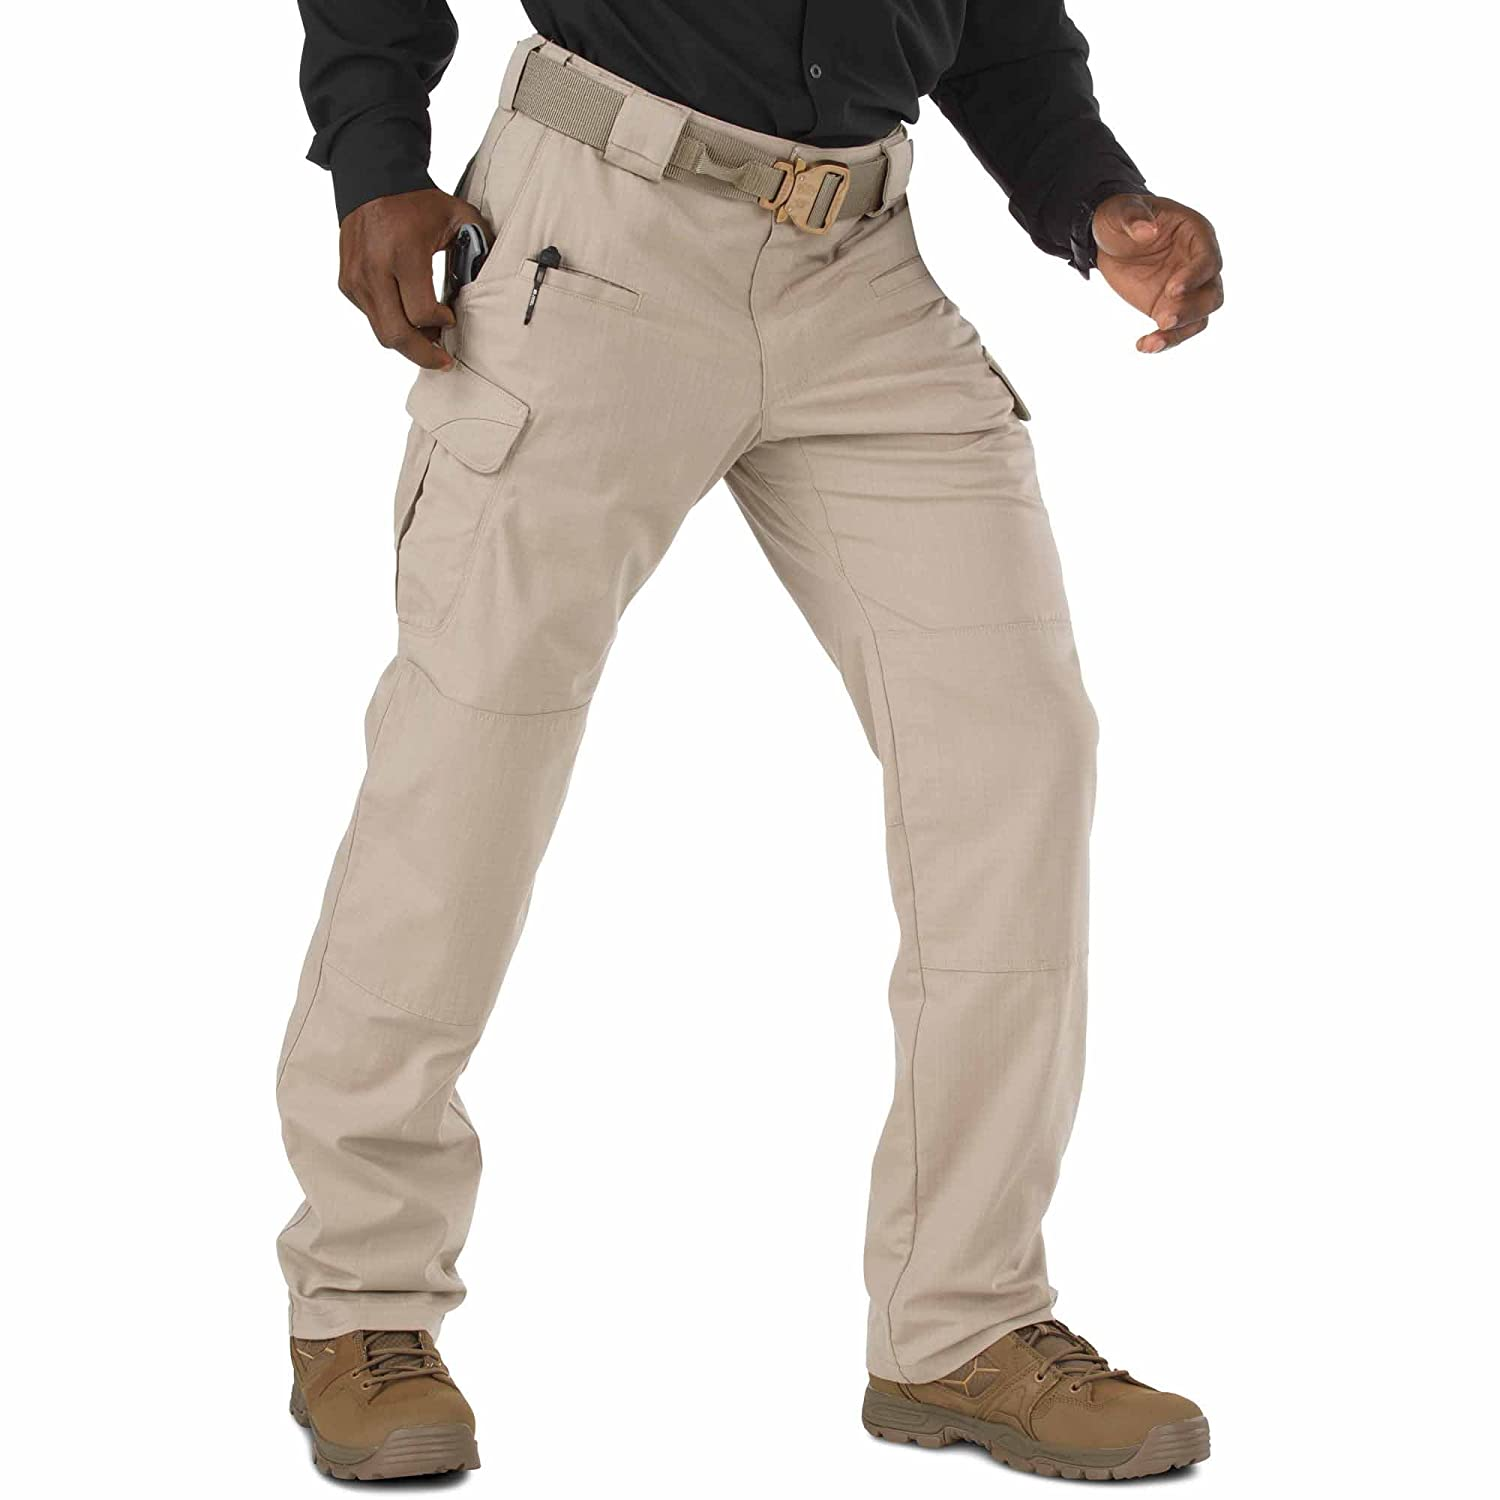 5.11 Mens Stryke Tactical Cargo Pant with Flex-Tac, Style 74369